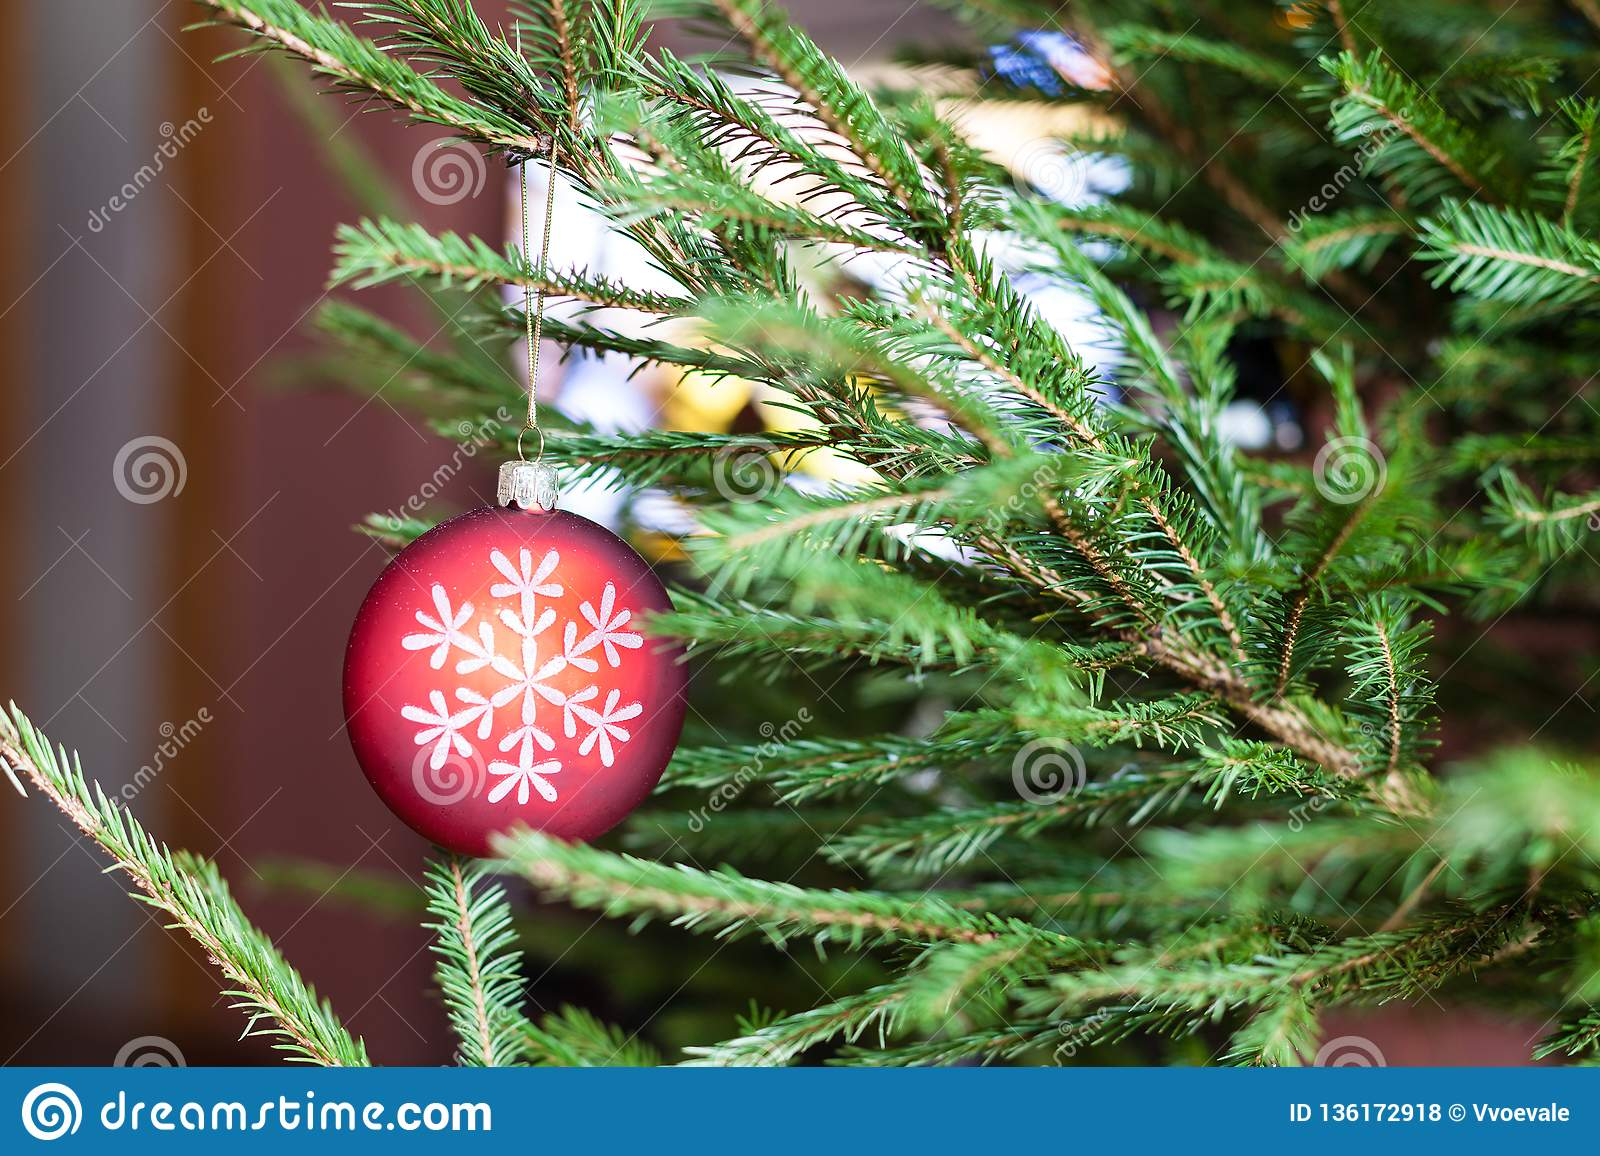 Ornaments on twigs of Christmas Tree and TV set